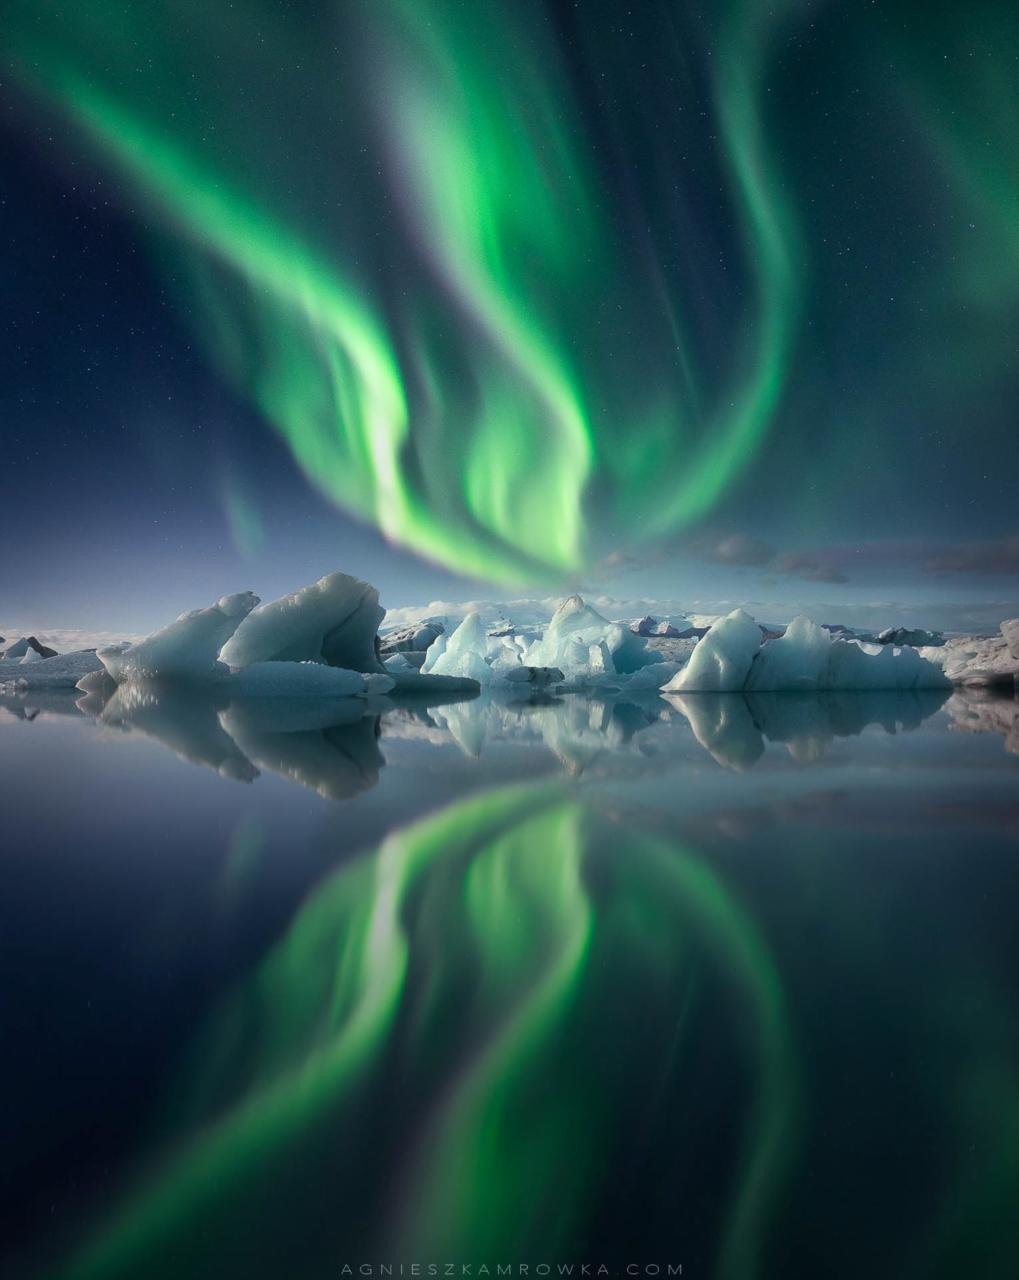 Best Photos of Northern Lights - Iceland Monitor